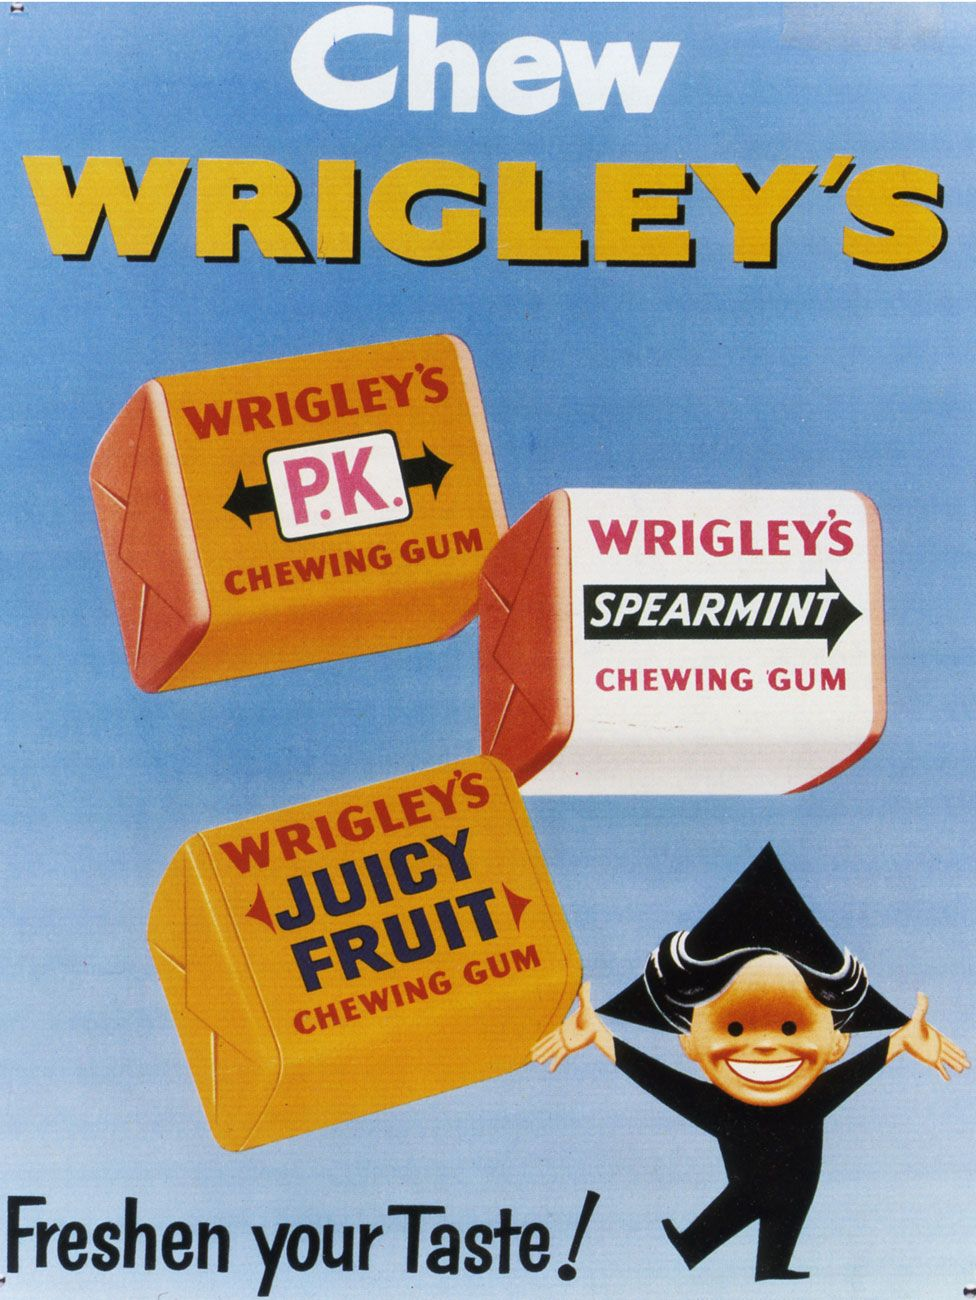 A 1950s advert for Wrigley's chewing gum